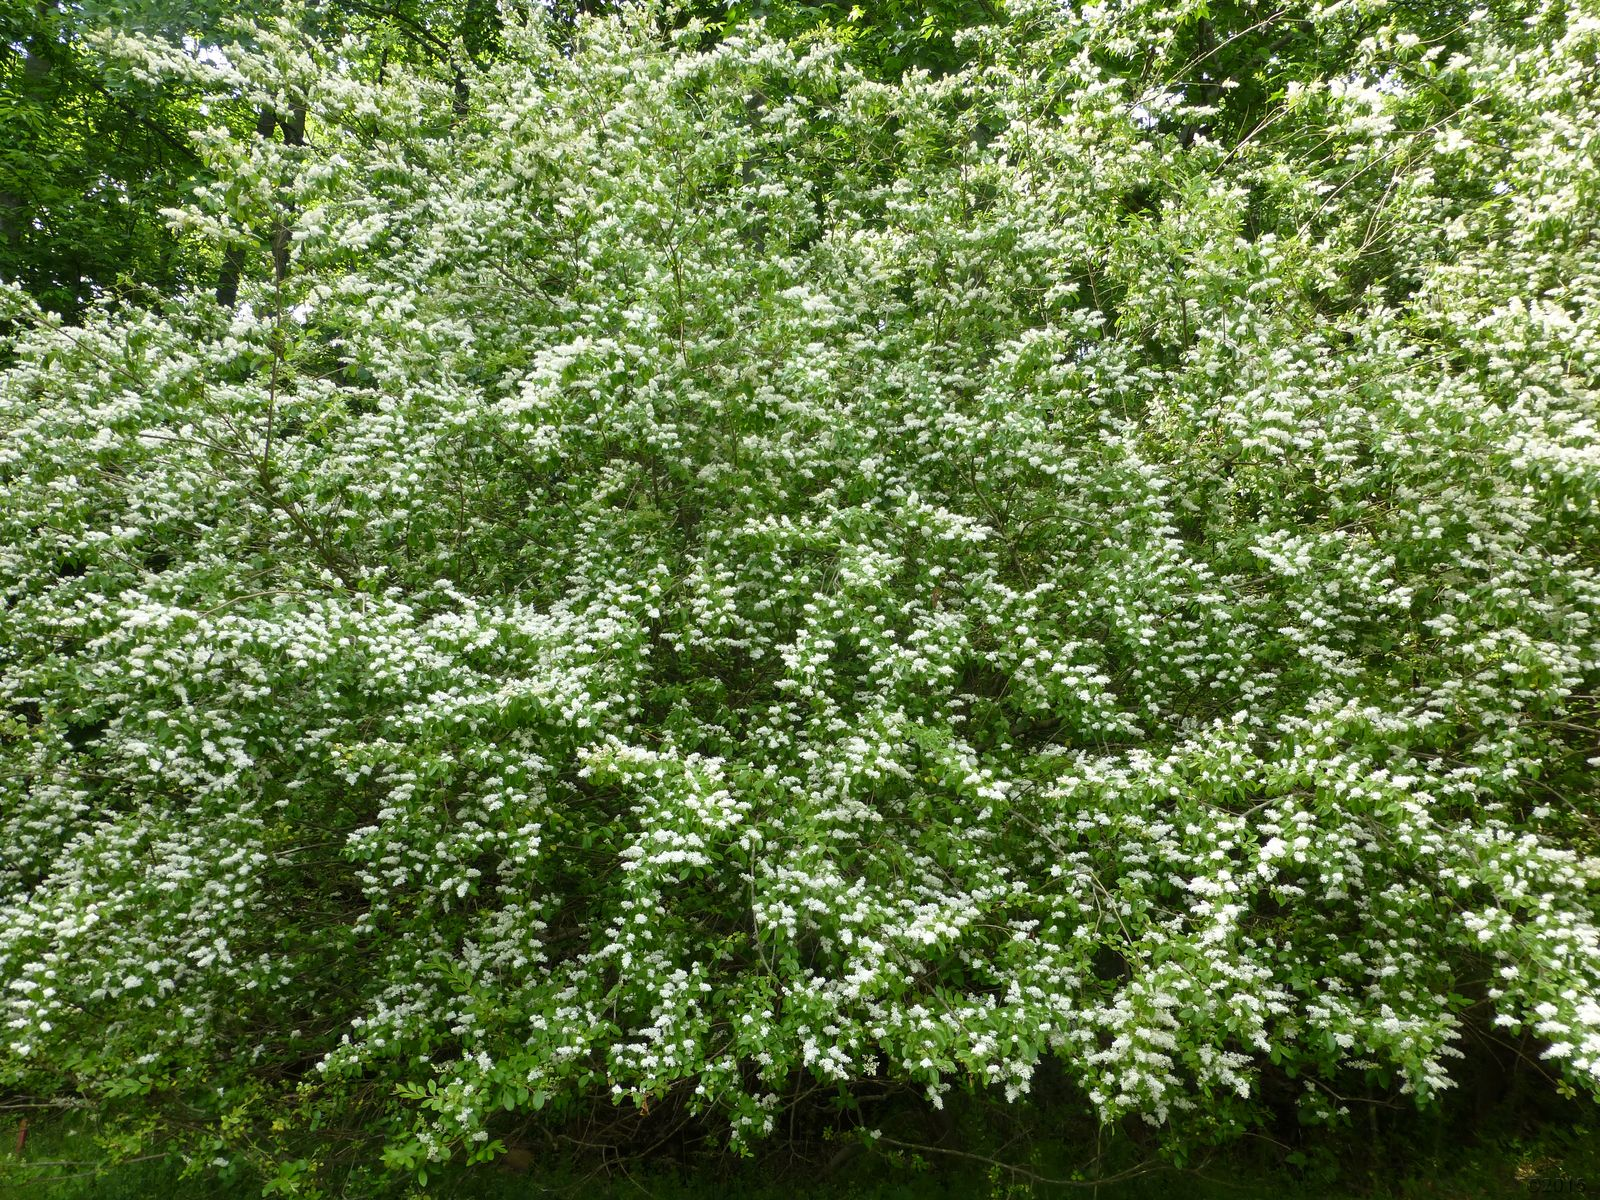 May 16, 2015 - stand of Chinese privet in Bent Tree